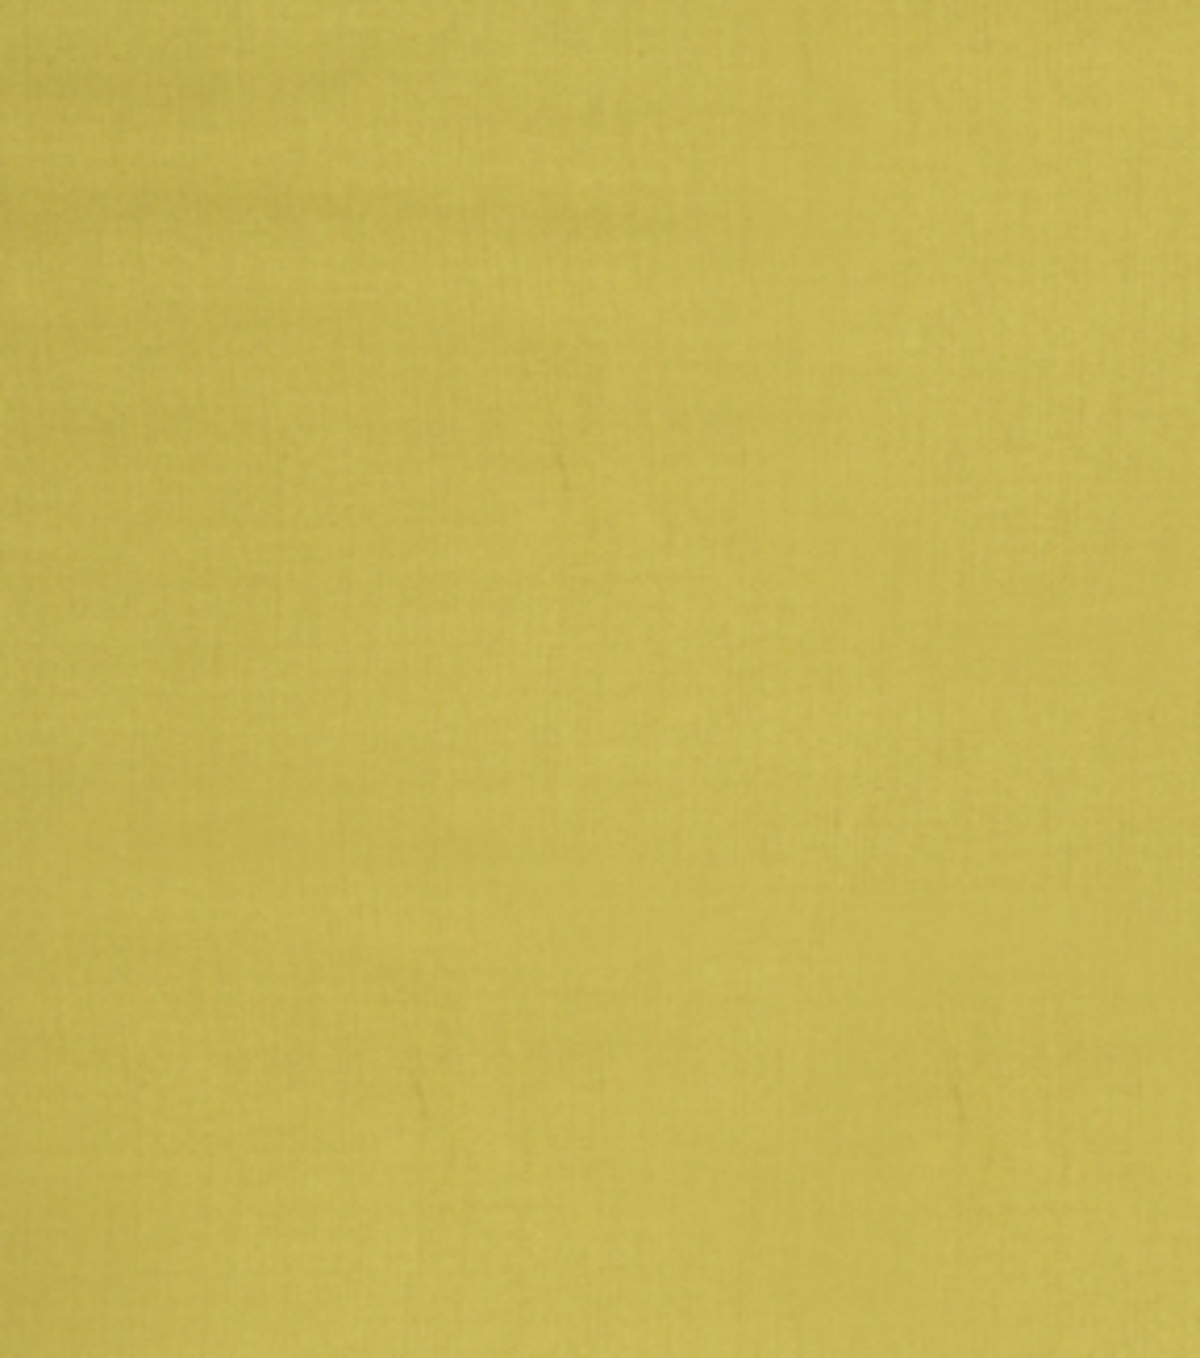 Home Decor 8\u0022x8\u0022 Fabric Swatch-Eaton Square Croissant Pear